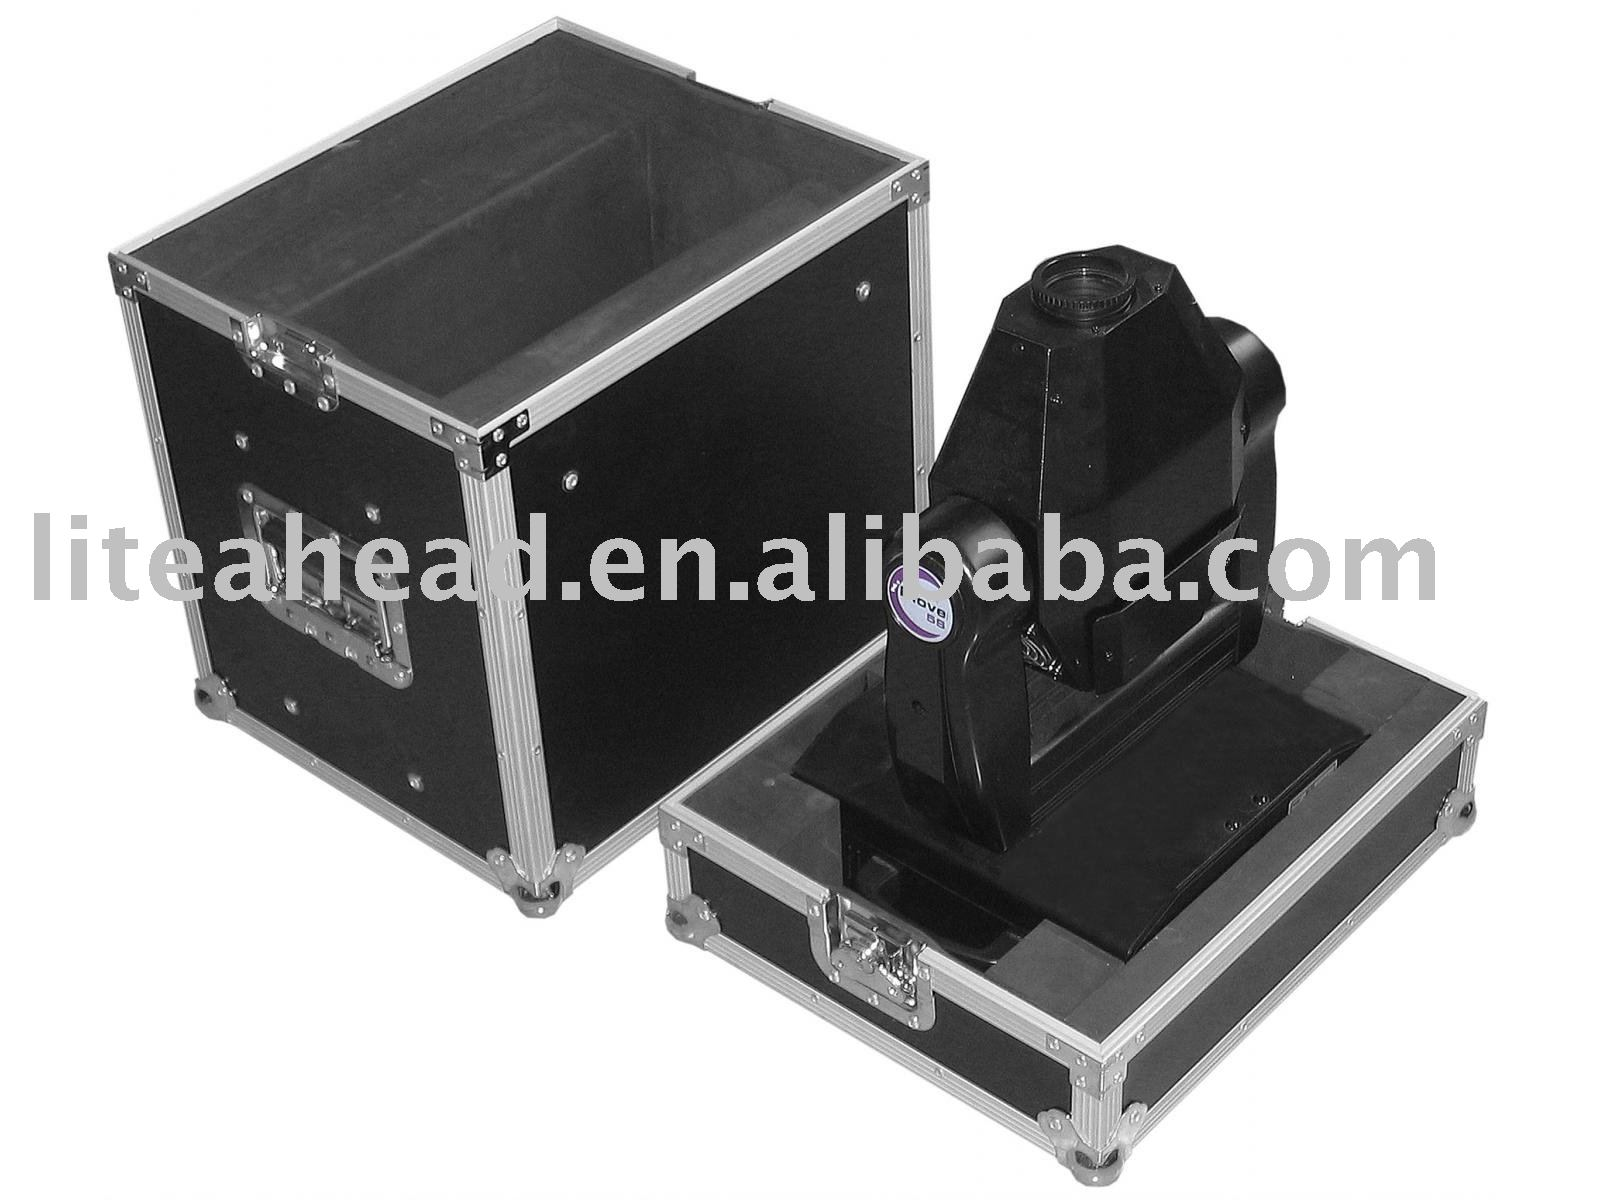 Flight Case For iMOVE 5S